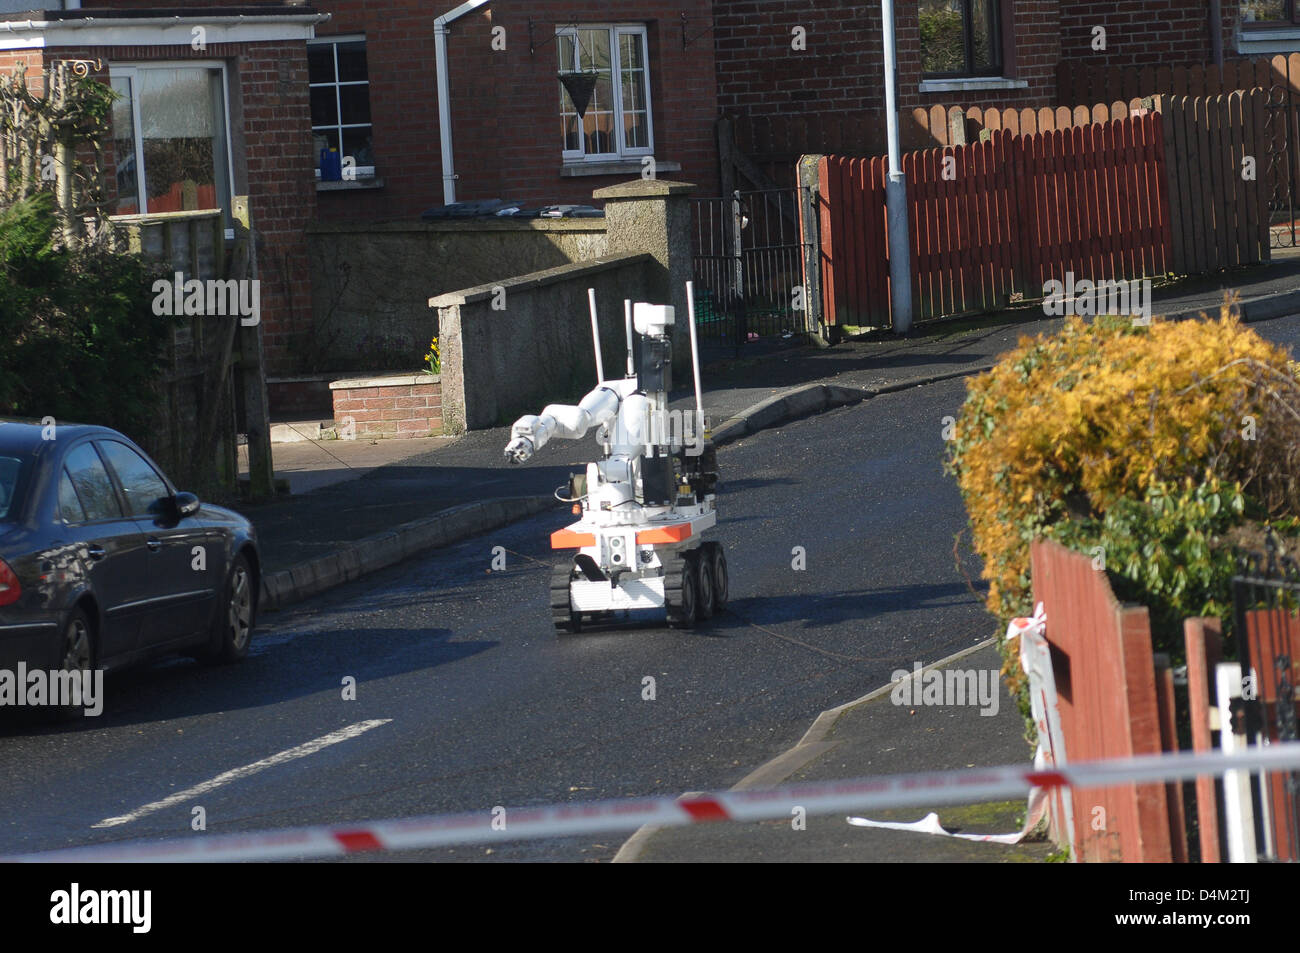 Armagh, Northern Ireland. 15th March 2013. Bomb squad robot at the scene of a suspected bomb at a house in Alexandra - Stock Image